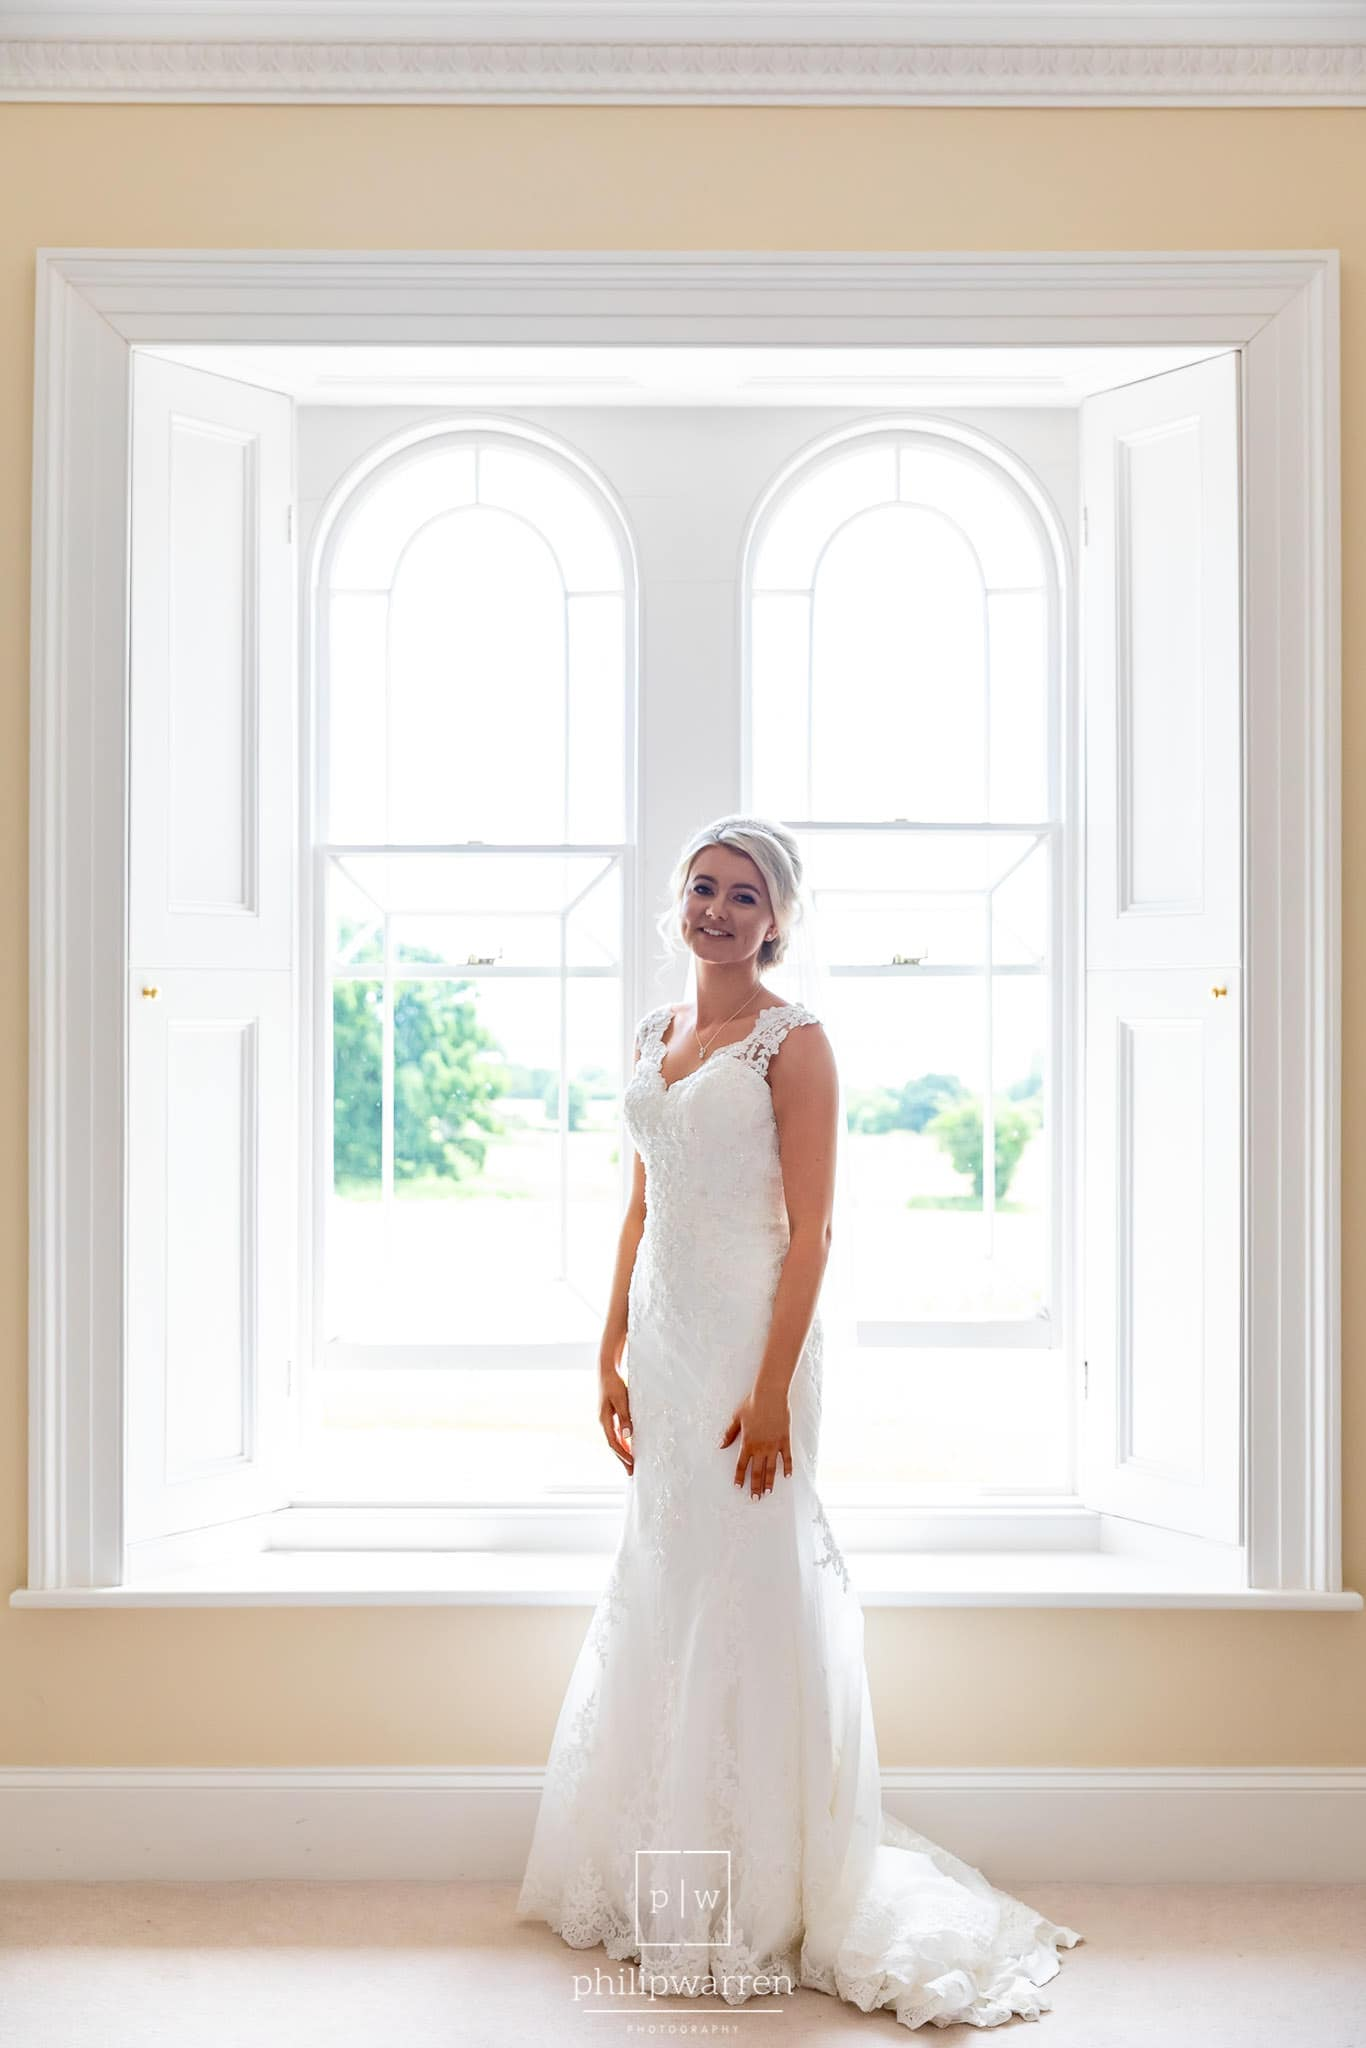 bright and light bridal protrait in the window of one of the bedrooms just before the wedding ceremony